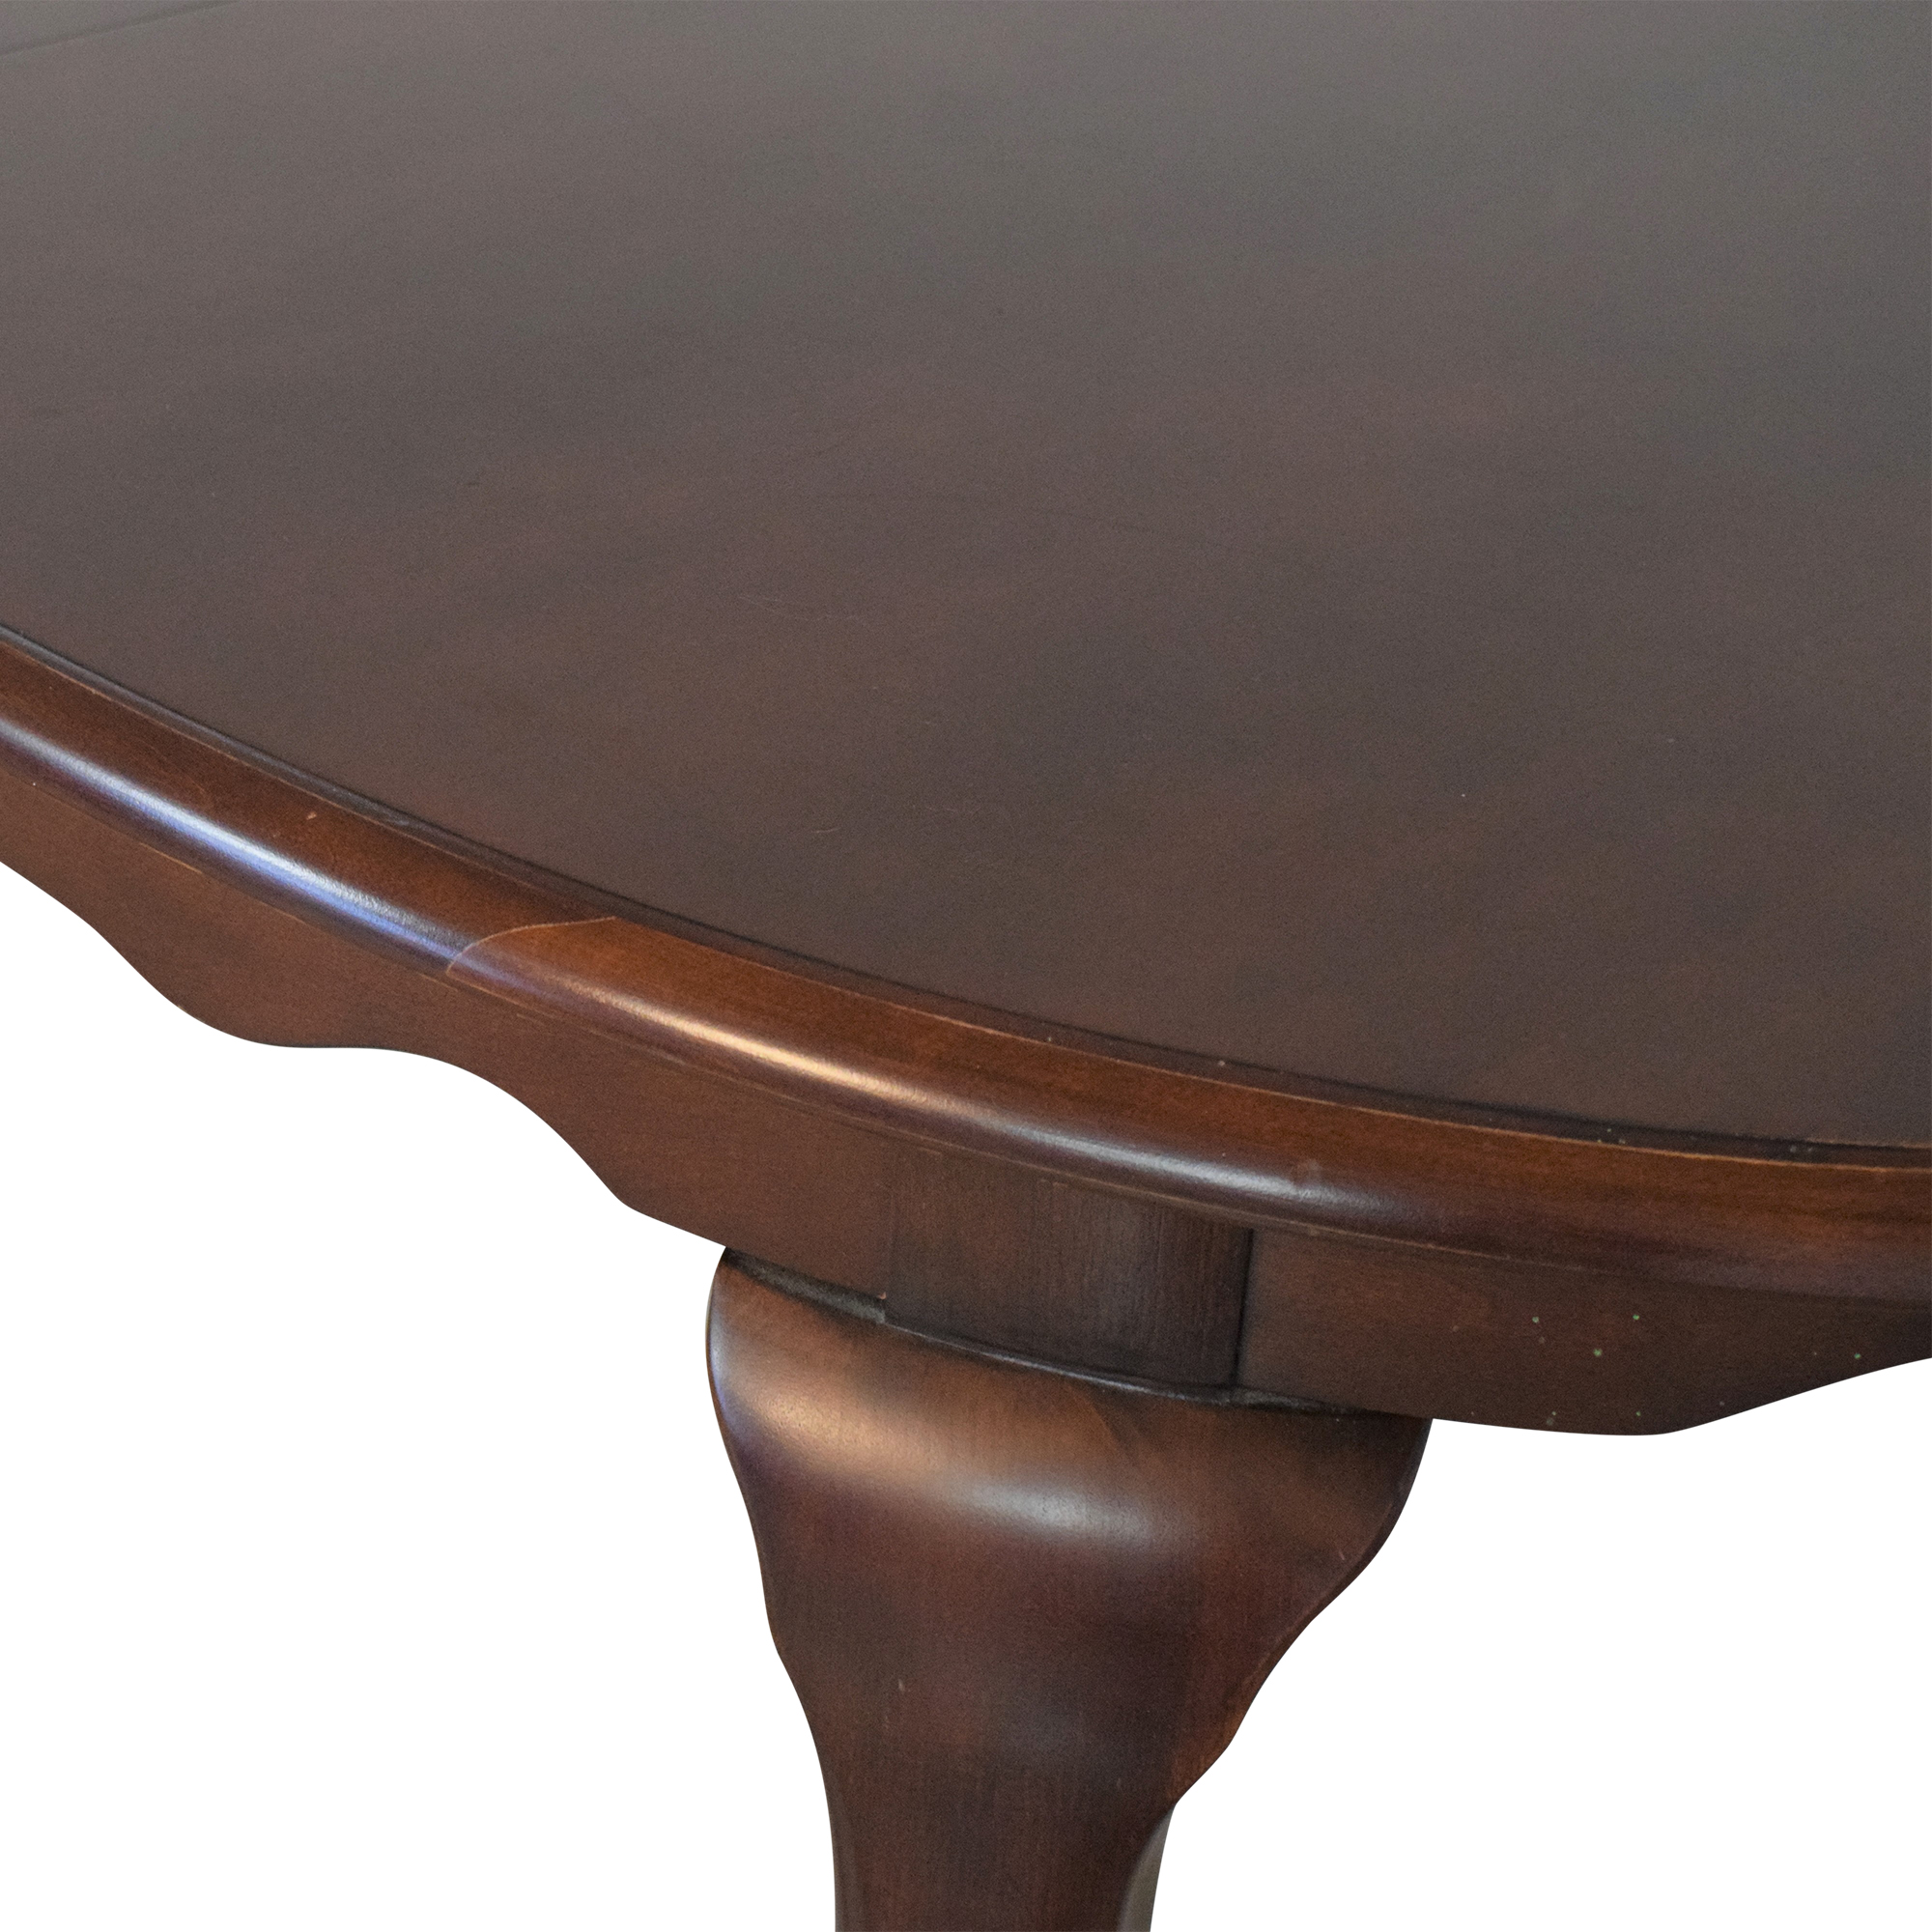 American Drew American Drew Extendable Oval Dining Table dimensions